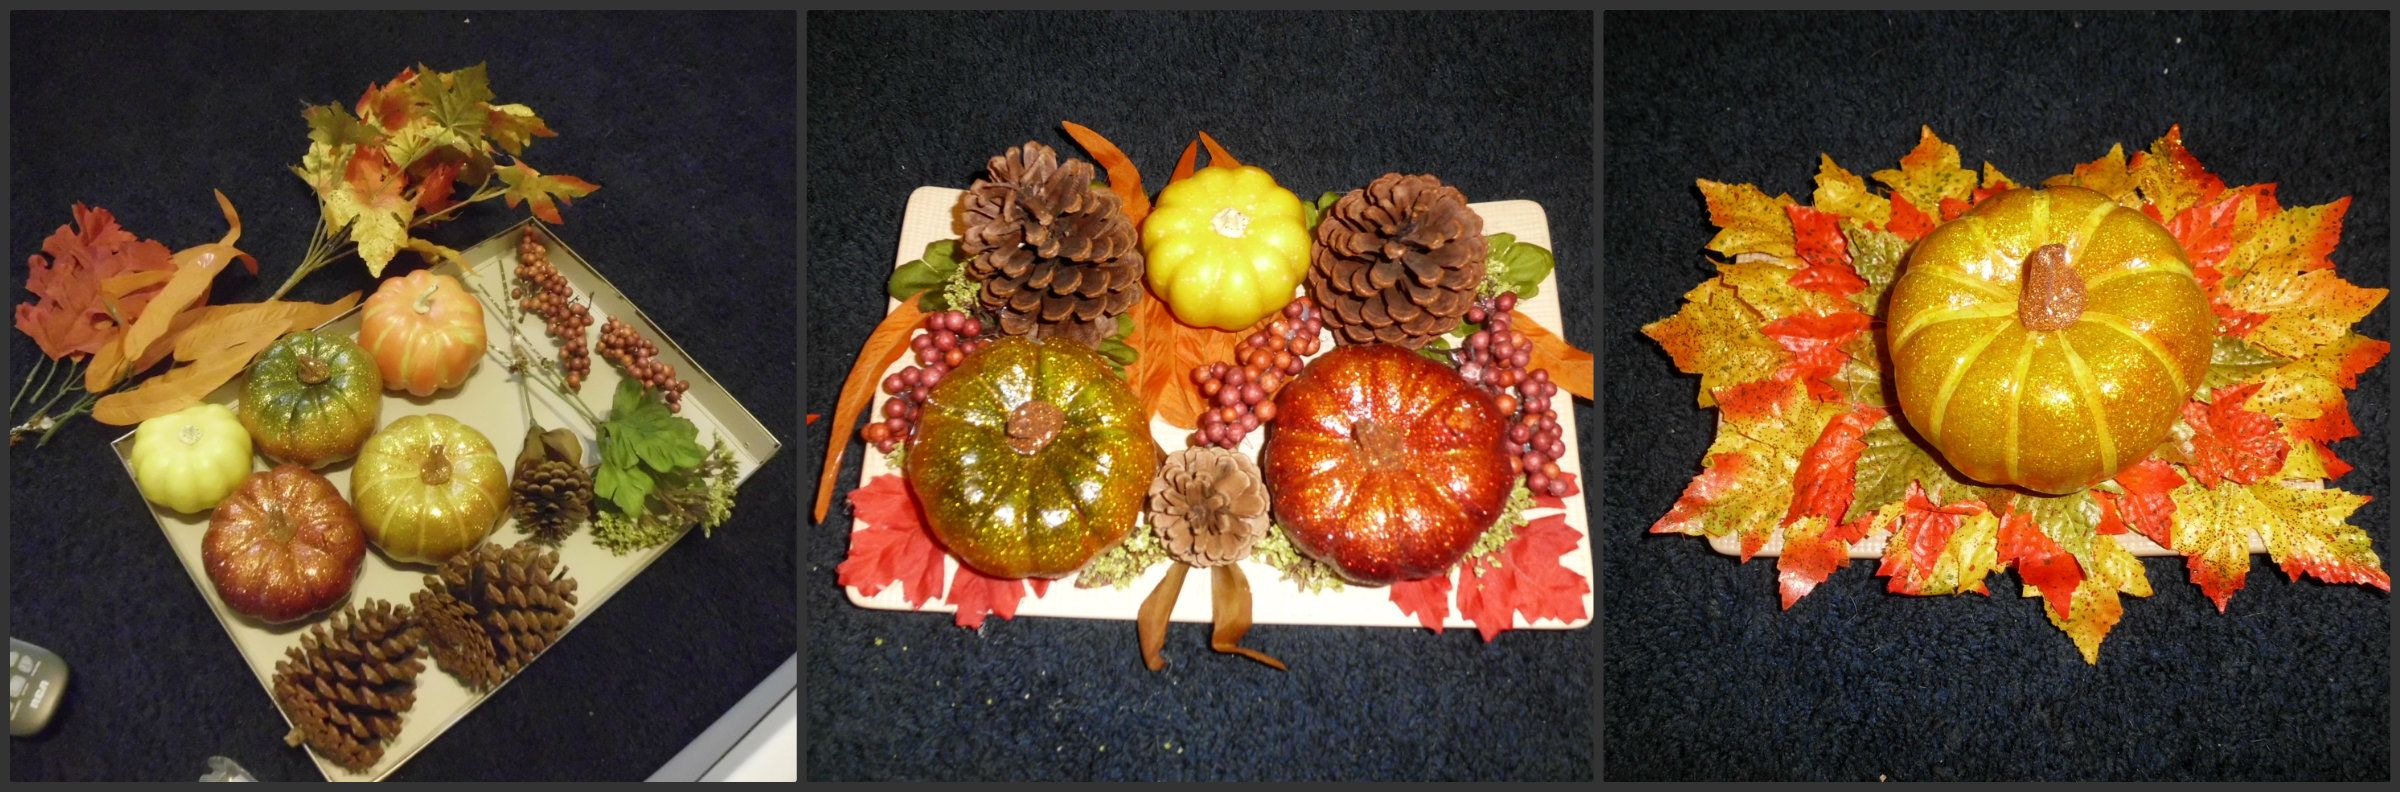 You can use any fall decorations along with a hot glue gun and